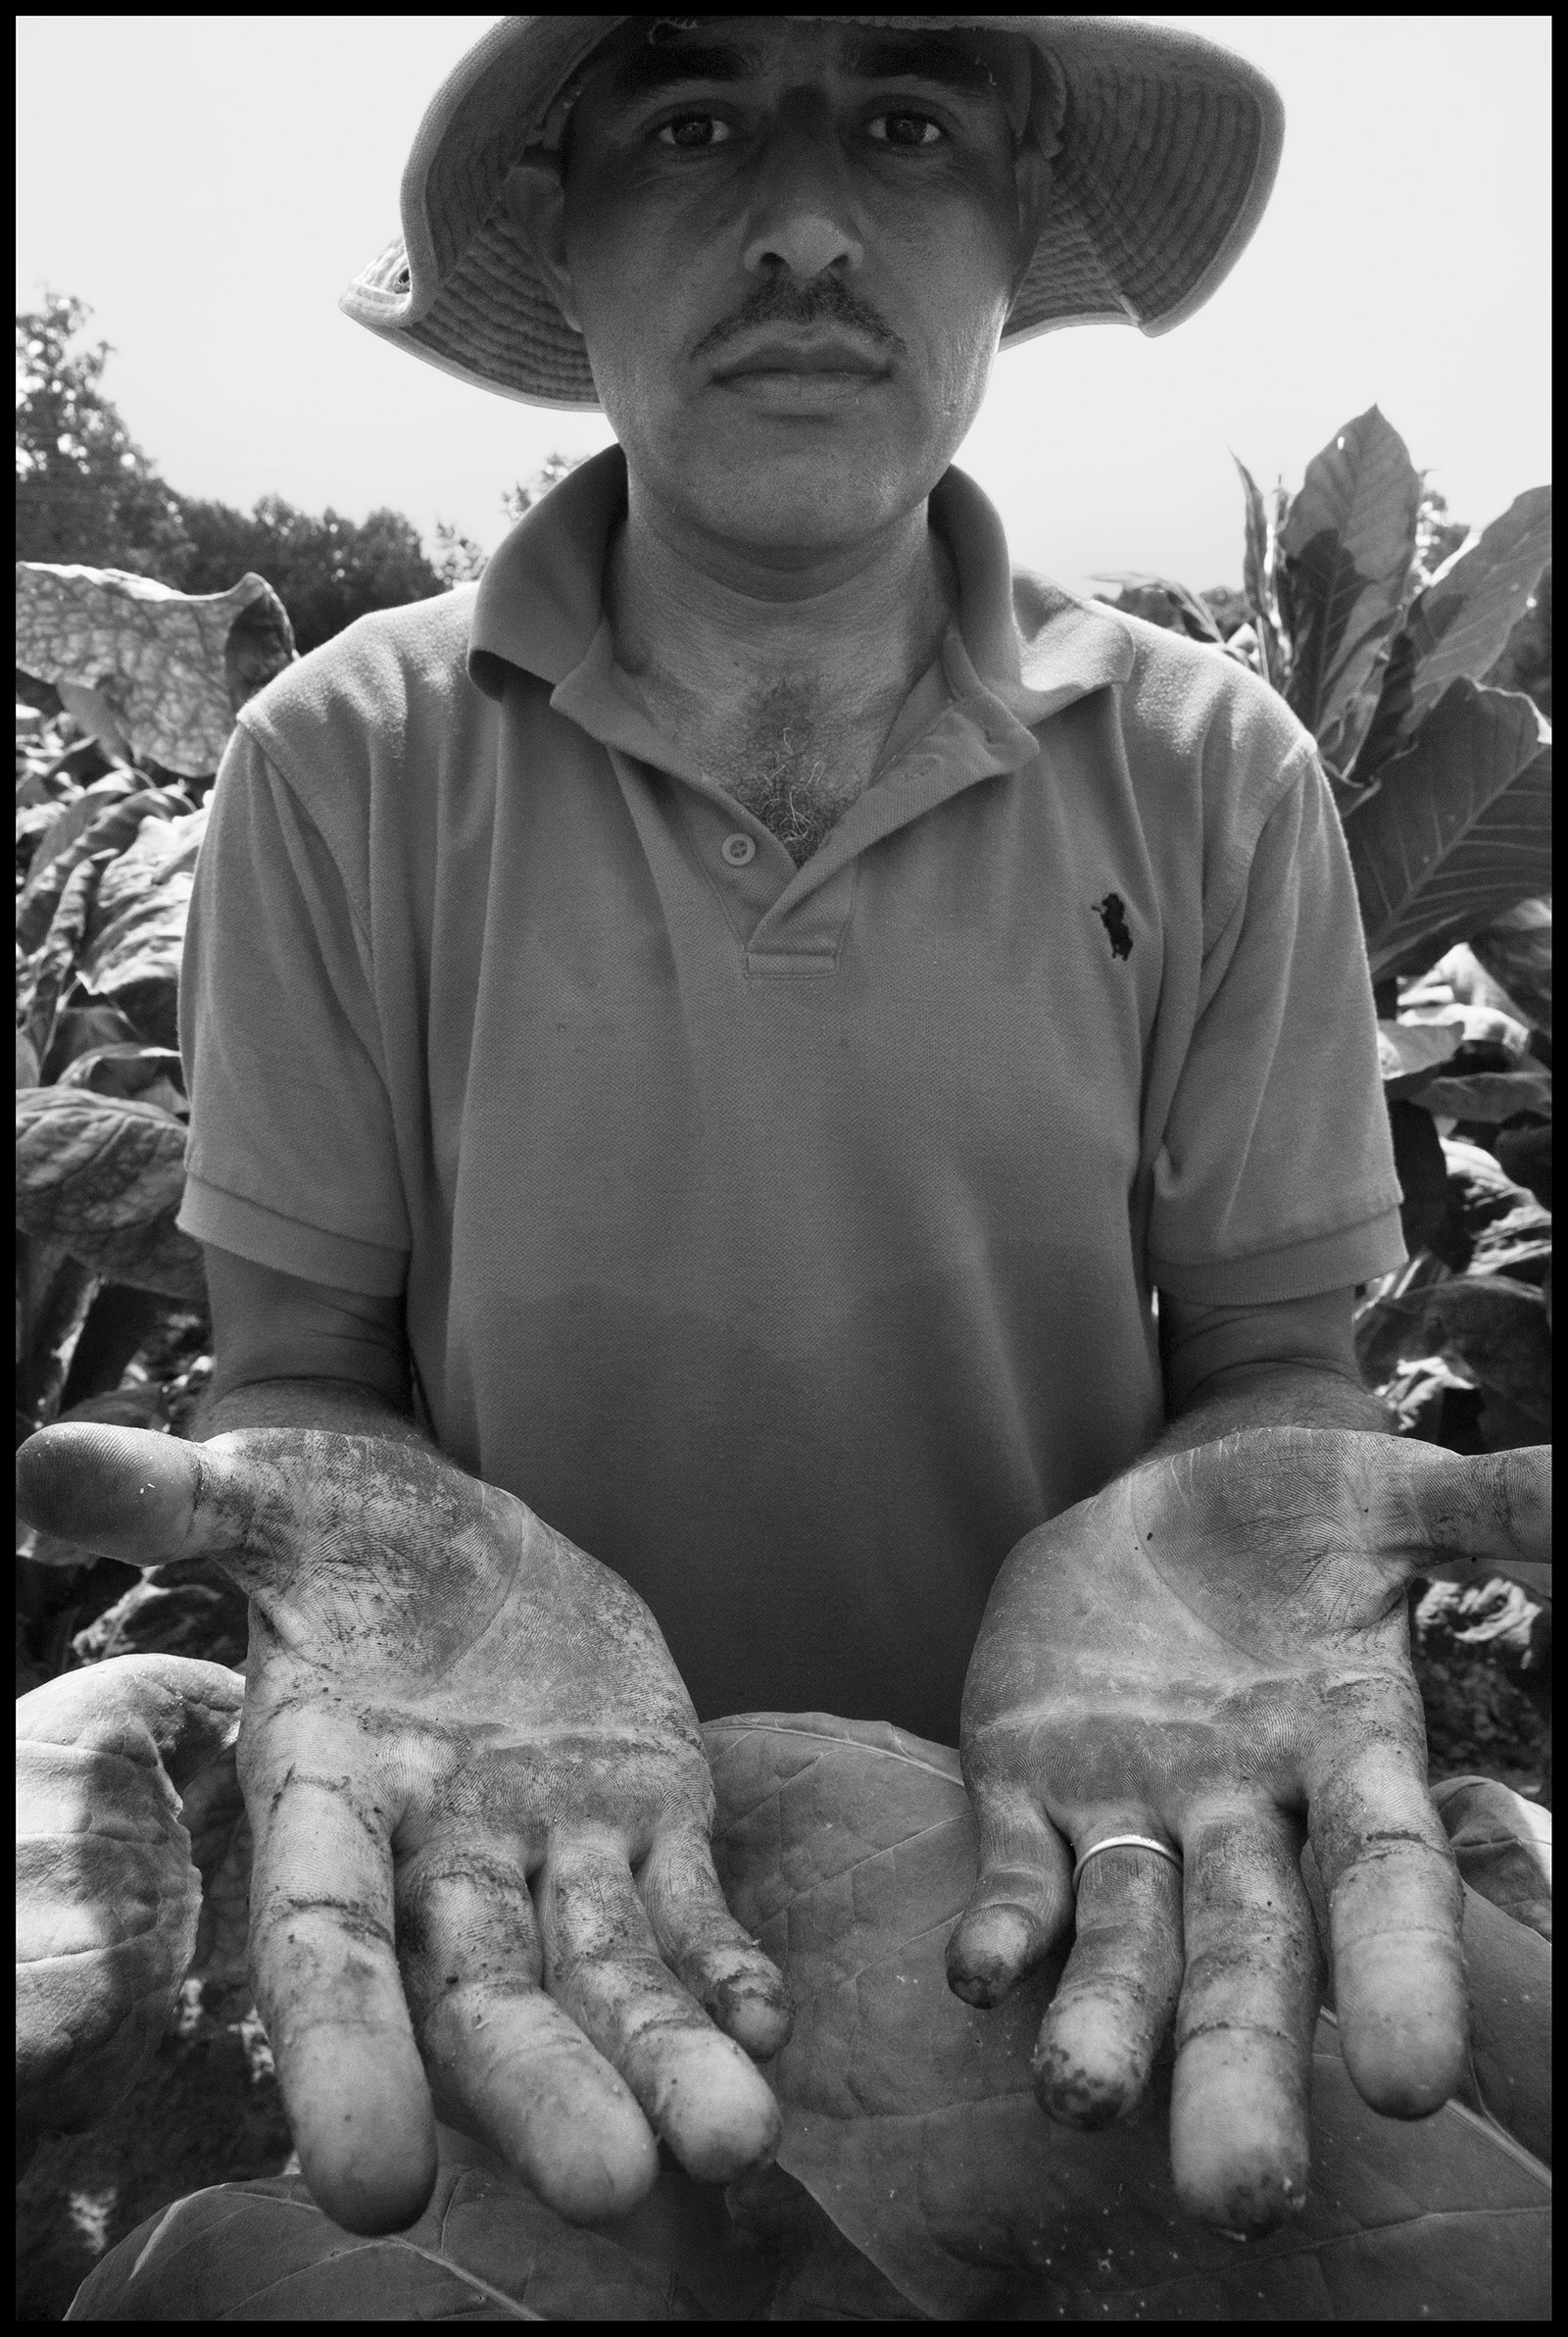 Tobacco farmer shows his injured hands